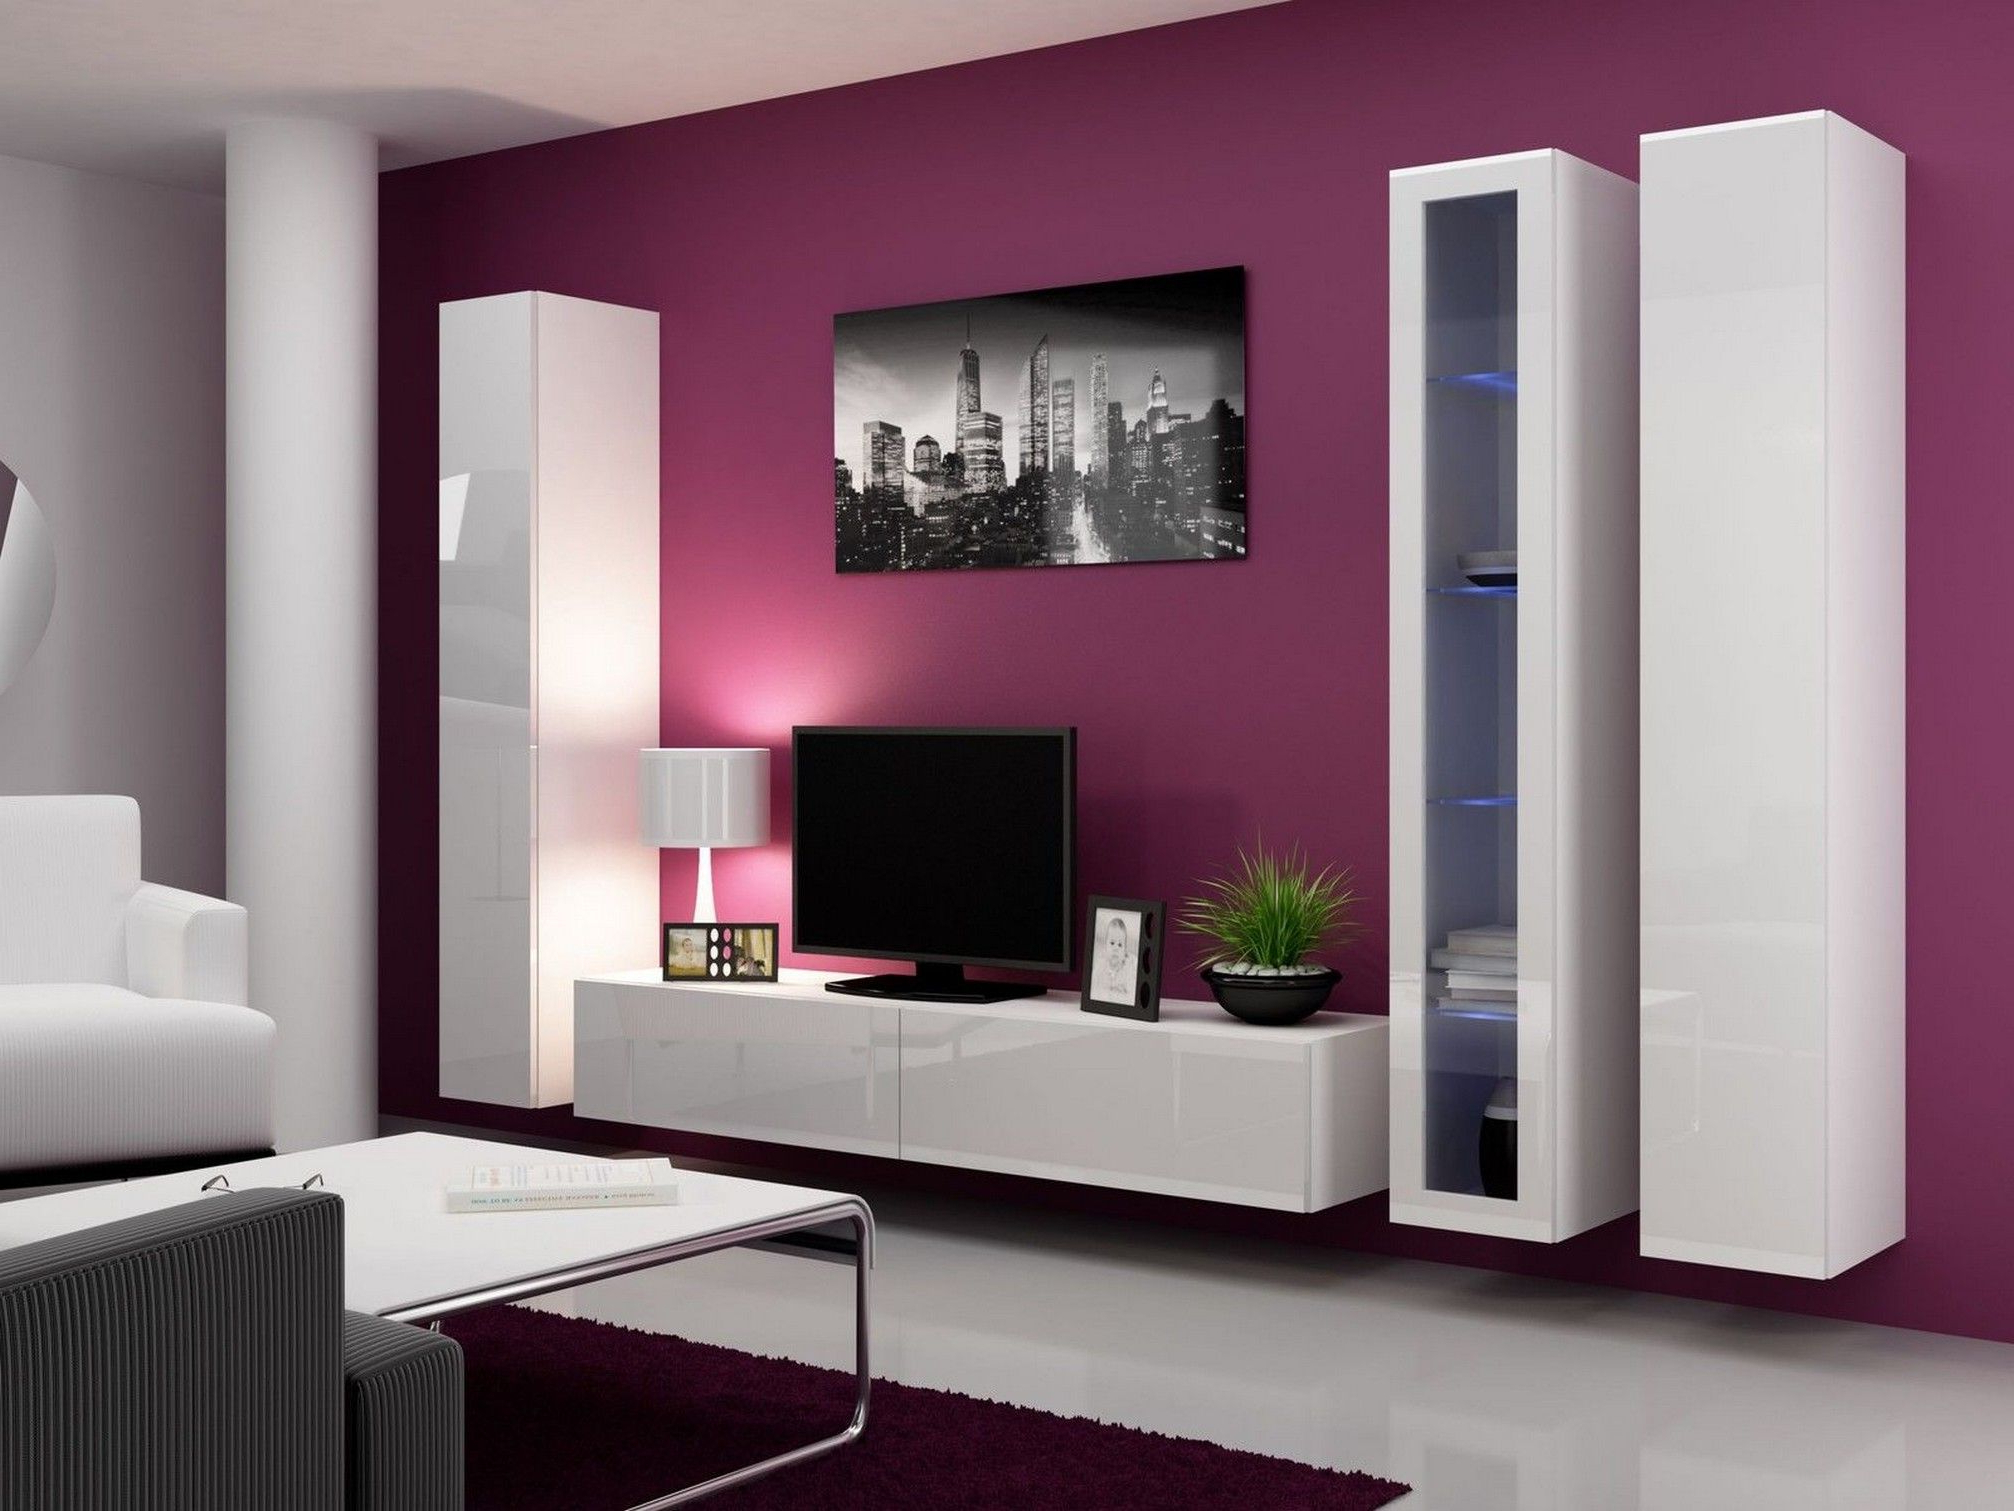 Wall Mounted Tv Unit, Furniture, Pink Color Schemes Ideas For Throughout 2018 Modern Wall Mount Tv Stands (View 16 of 20)